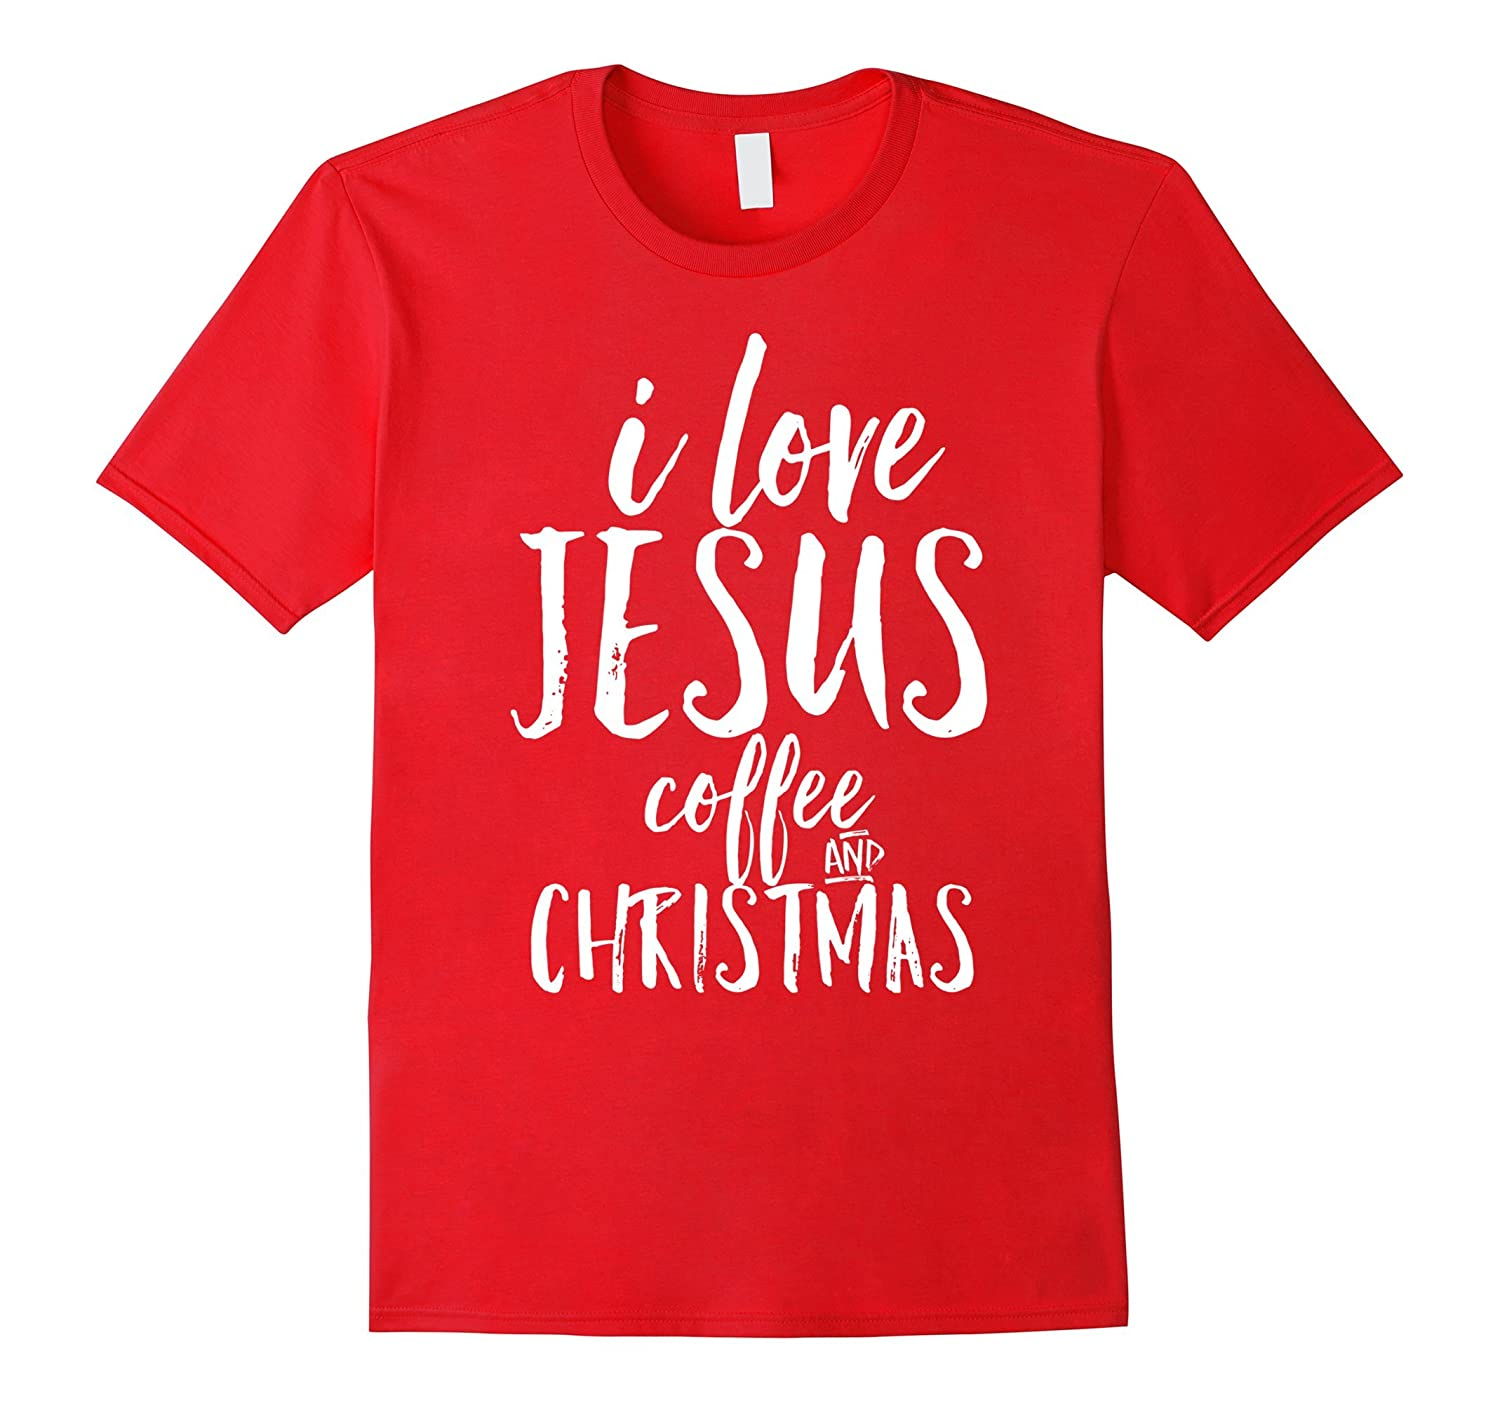 I Love Jesus Coffee and Christmas Women's Holiday Shirt-ANZ